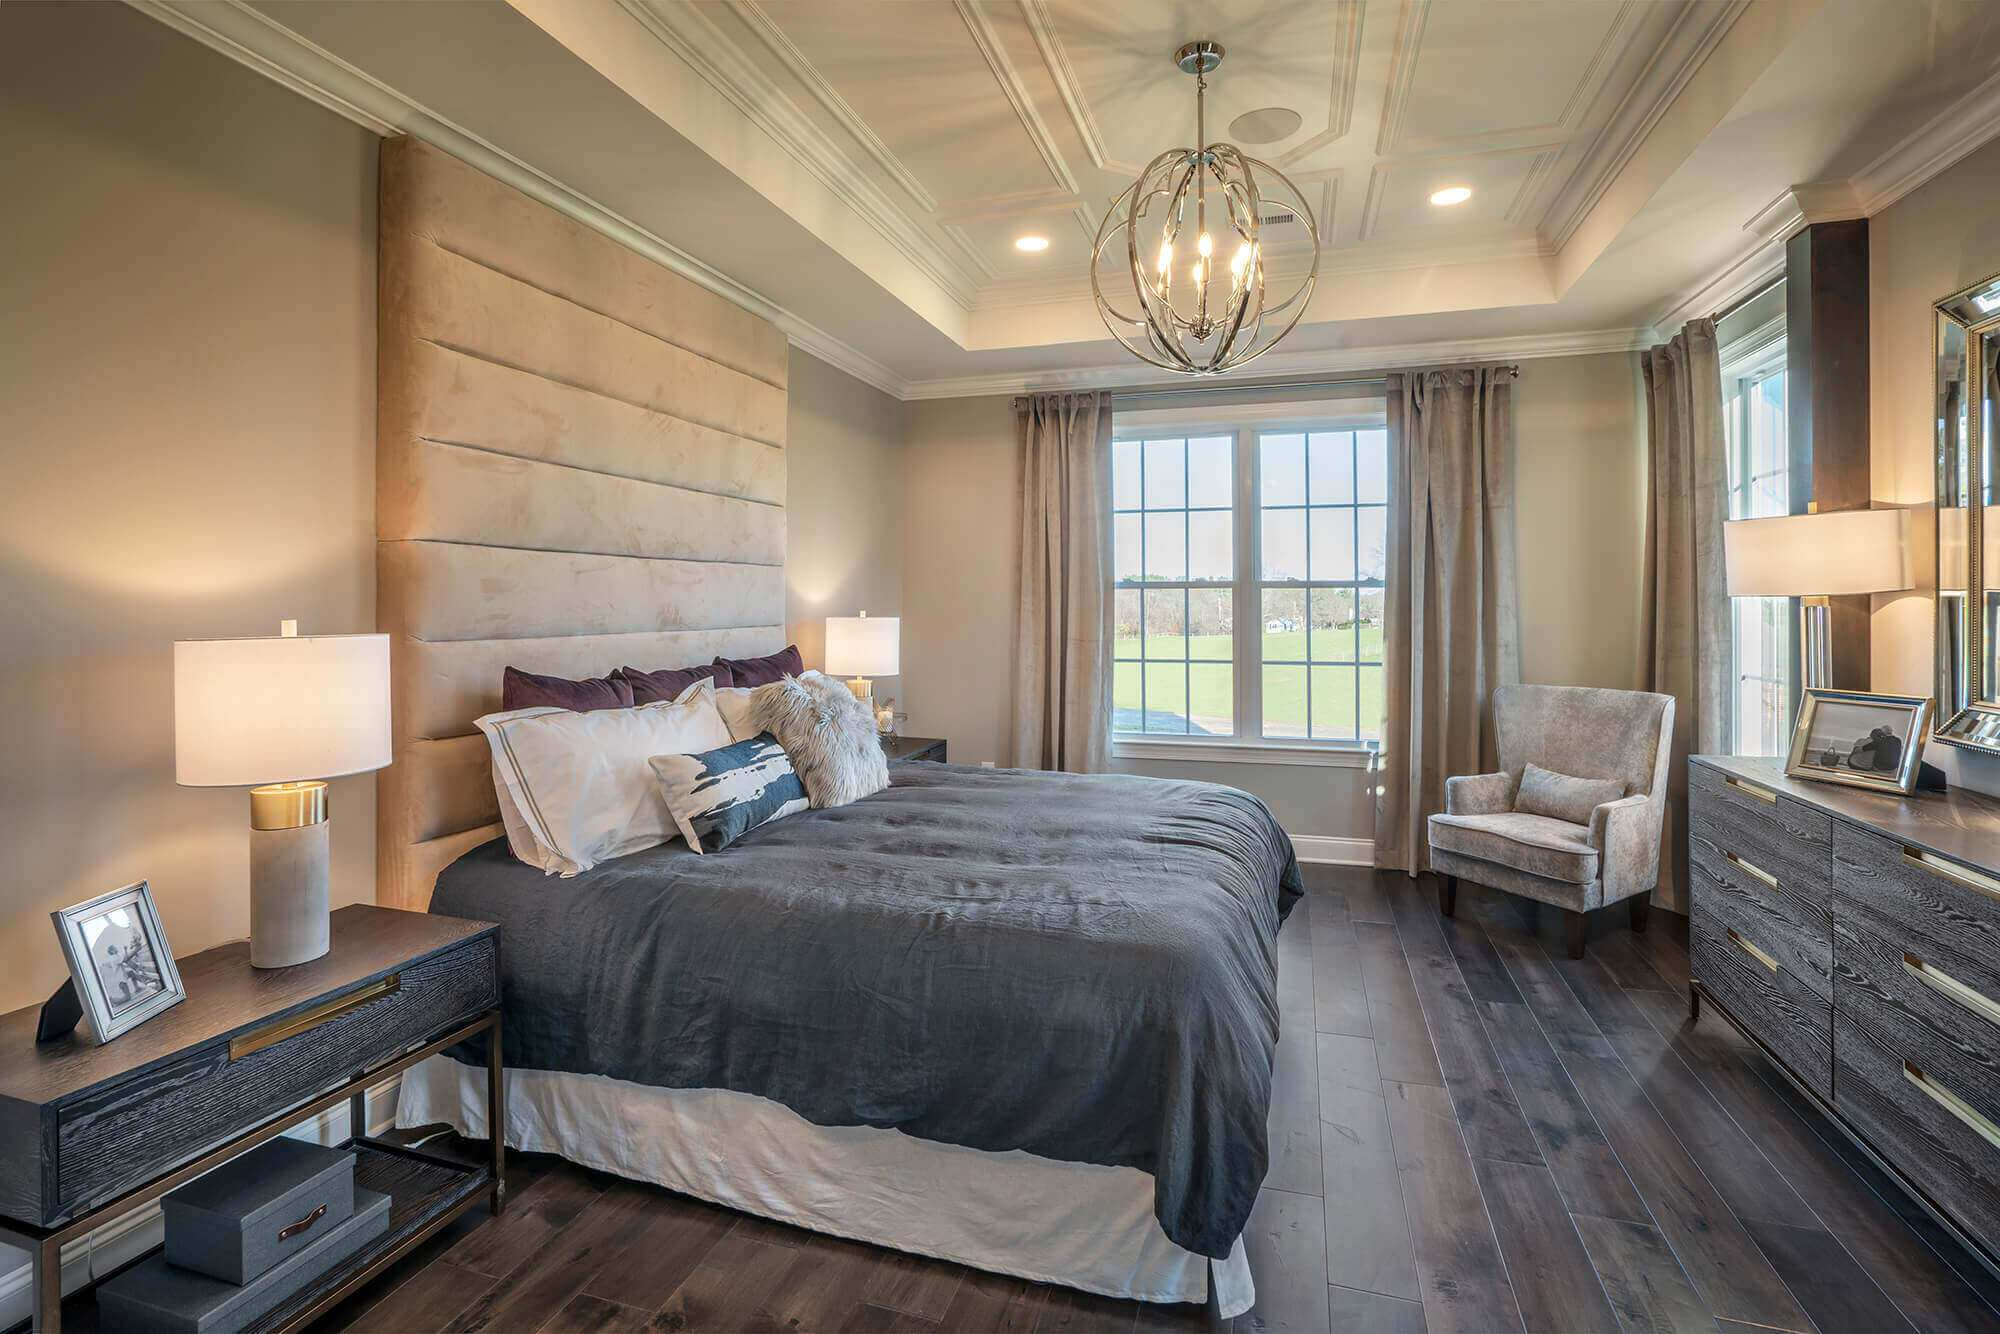 Bedroom featured in The Franklin By Traditions of America in Pittsburgh, PA